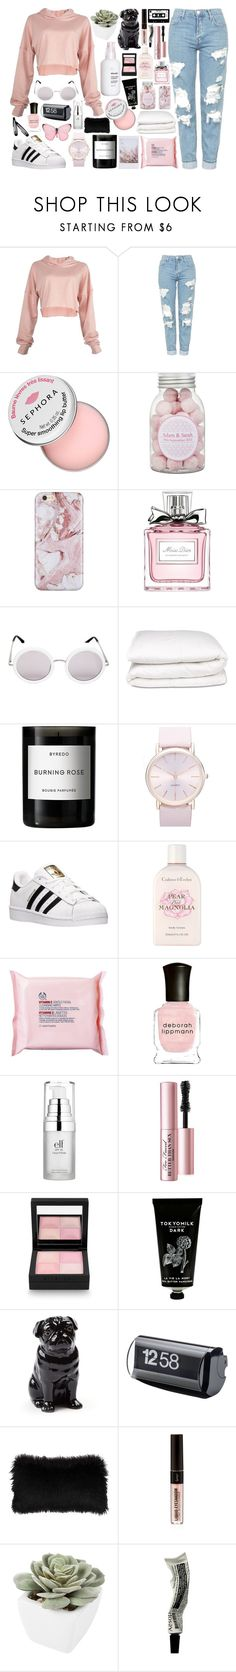 """""""Pretty n Pink #2"""" by madeleinebabes ❤ liked on Polyvore featuring Topshop, Sephora Collection, Christian Dior, The Row, Selfridges, Byredo, BP., adidas, Crabtree & Evelyn and The Body Shop"""